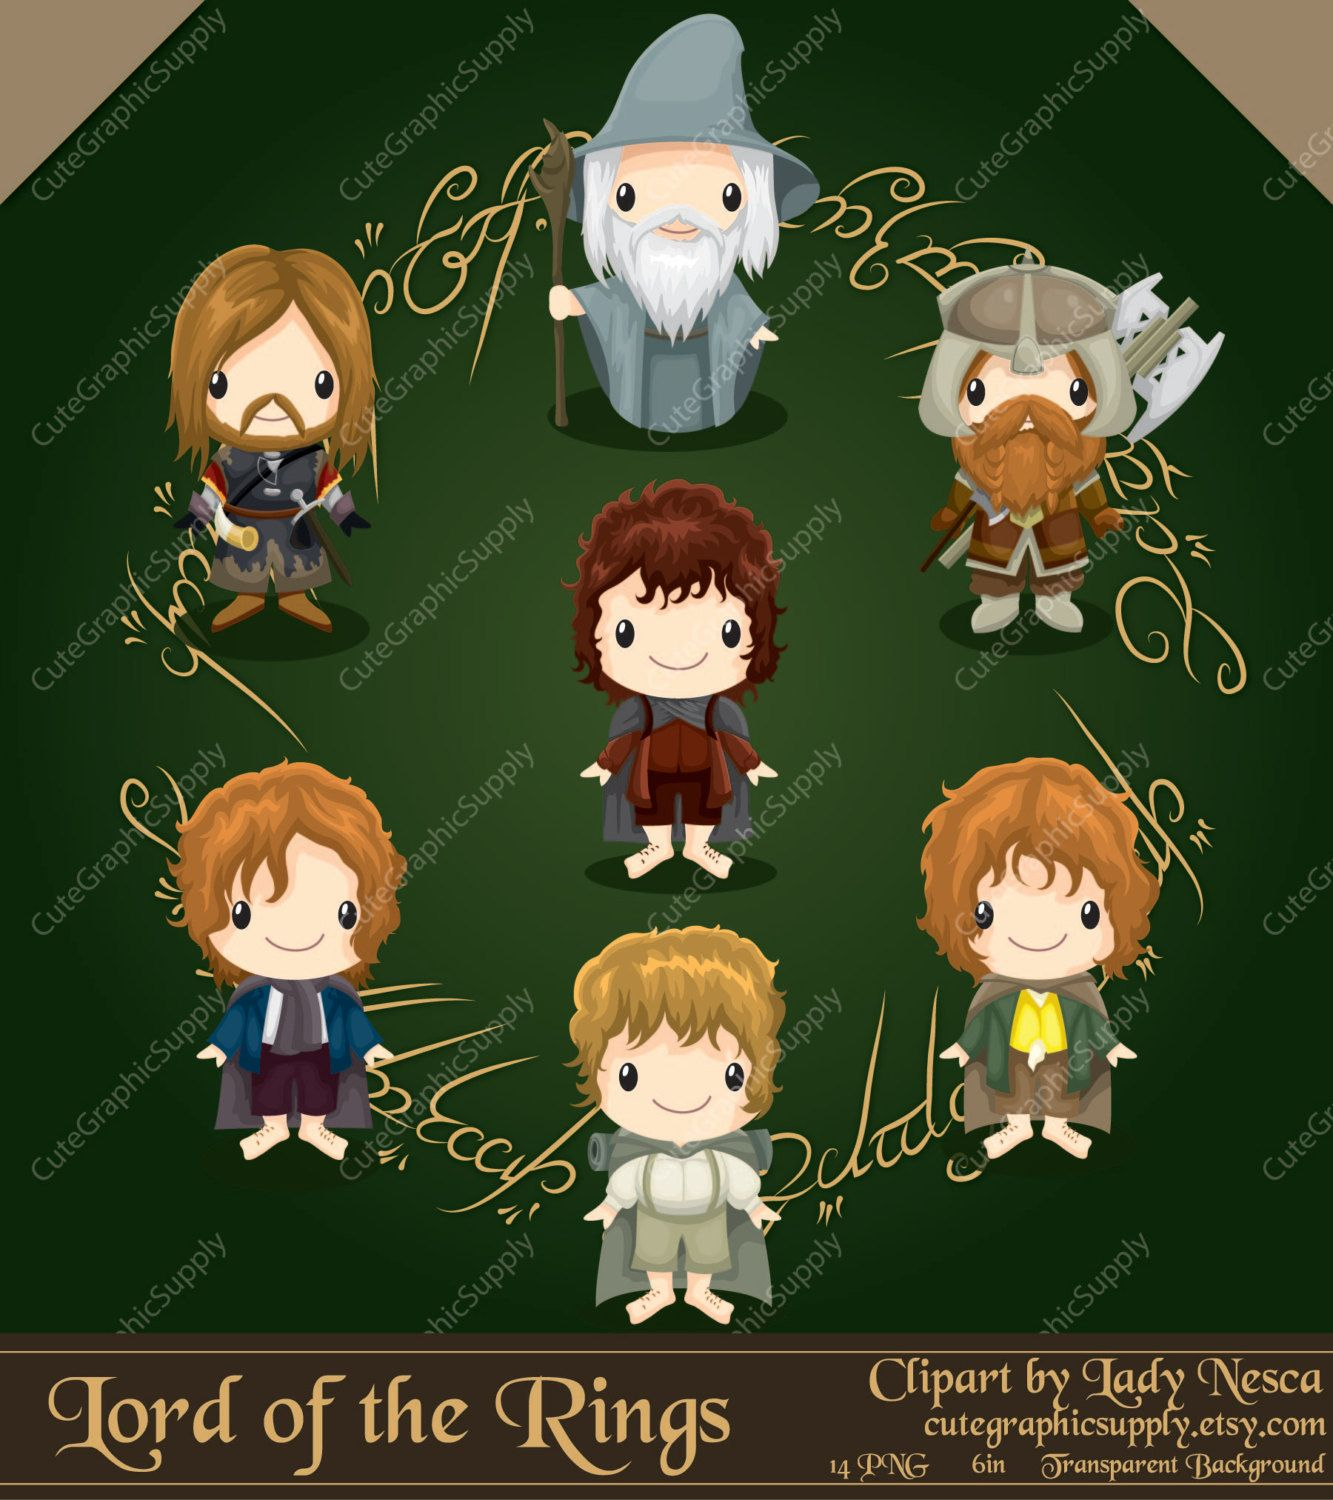 Lord of the Rings inspired clipart, hobb-Lord of the Rings inspired clipart, hobbit clipart, elf clipart,  fellowship, Lord of the Rings, LOTR clipart -LN090--1